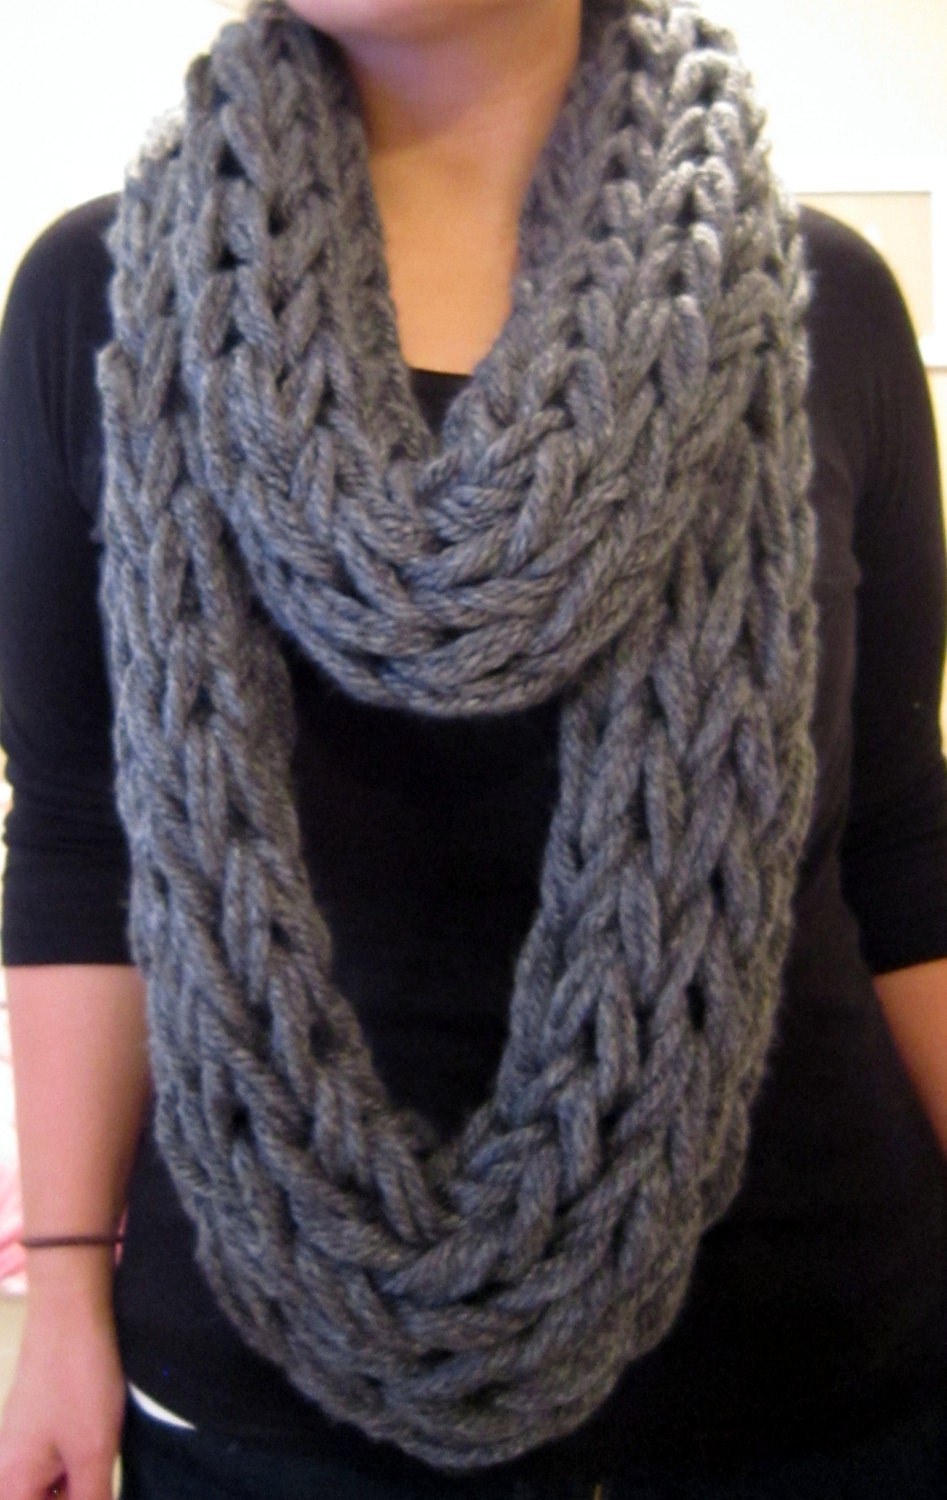 Arm Knitting Infinity Scarf : Unavailable listing on etsy